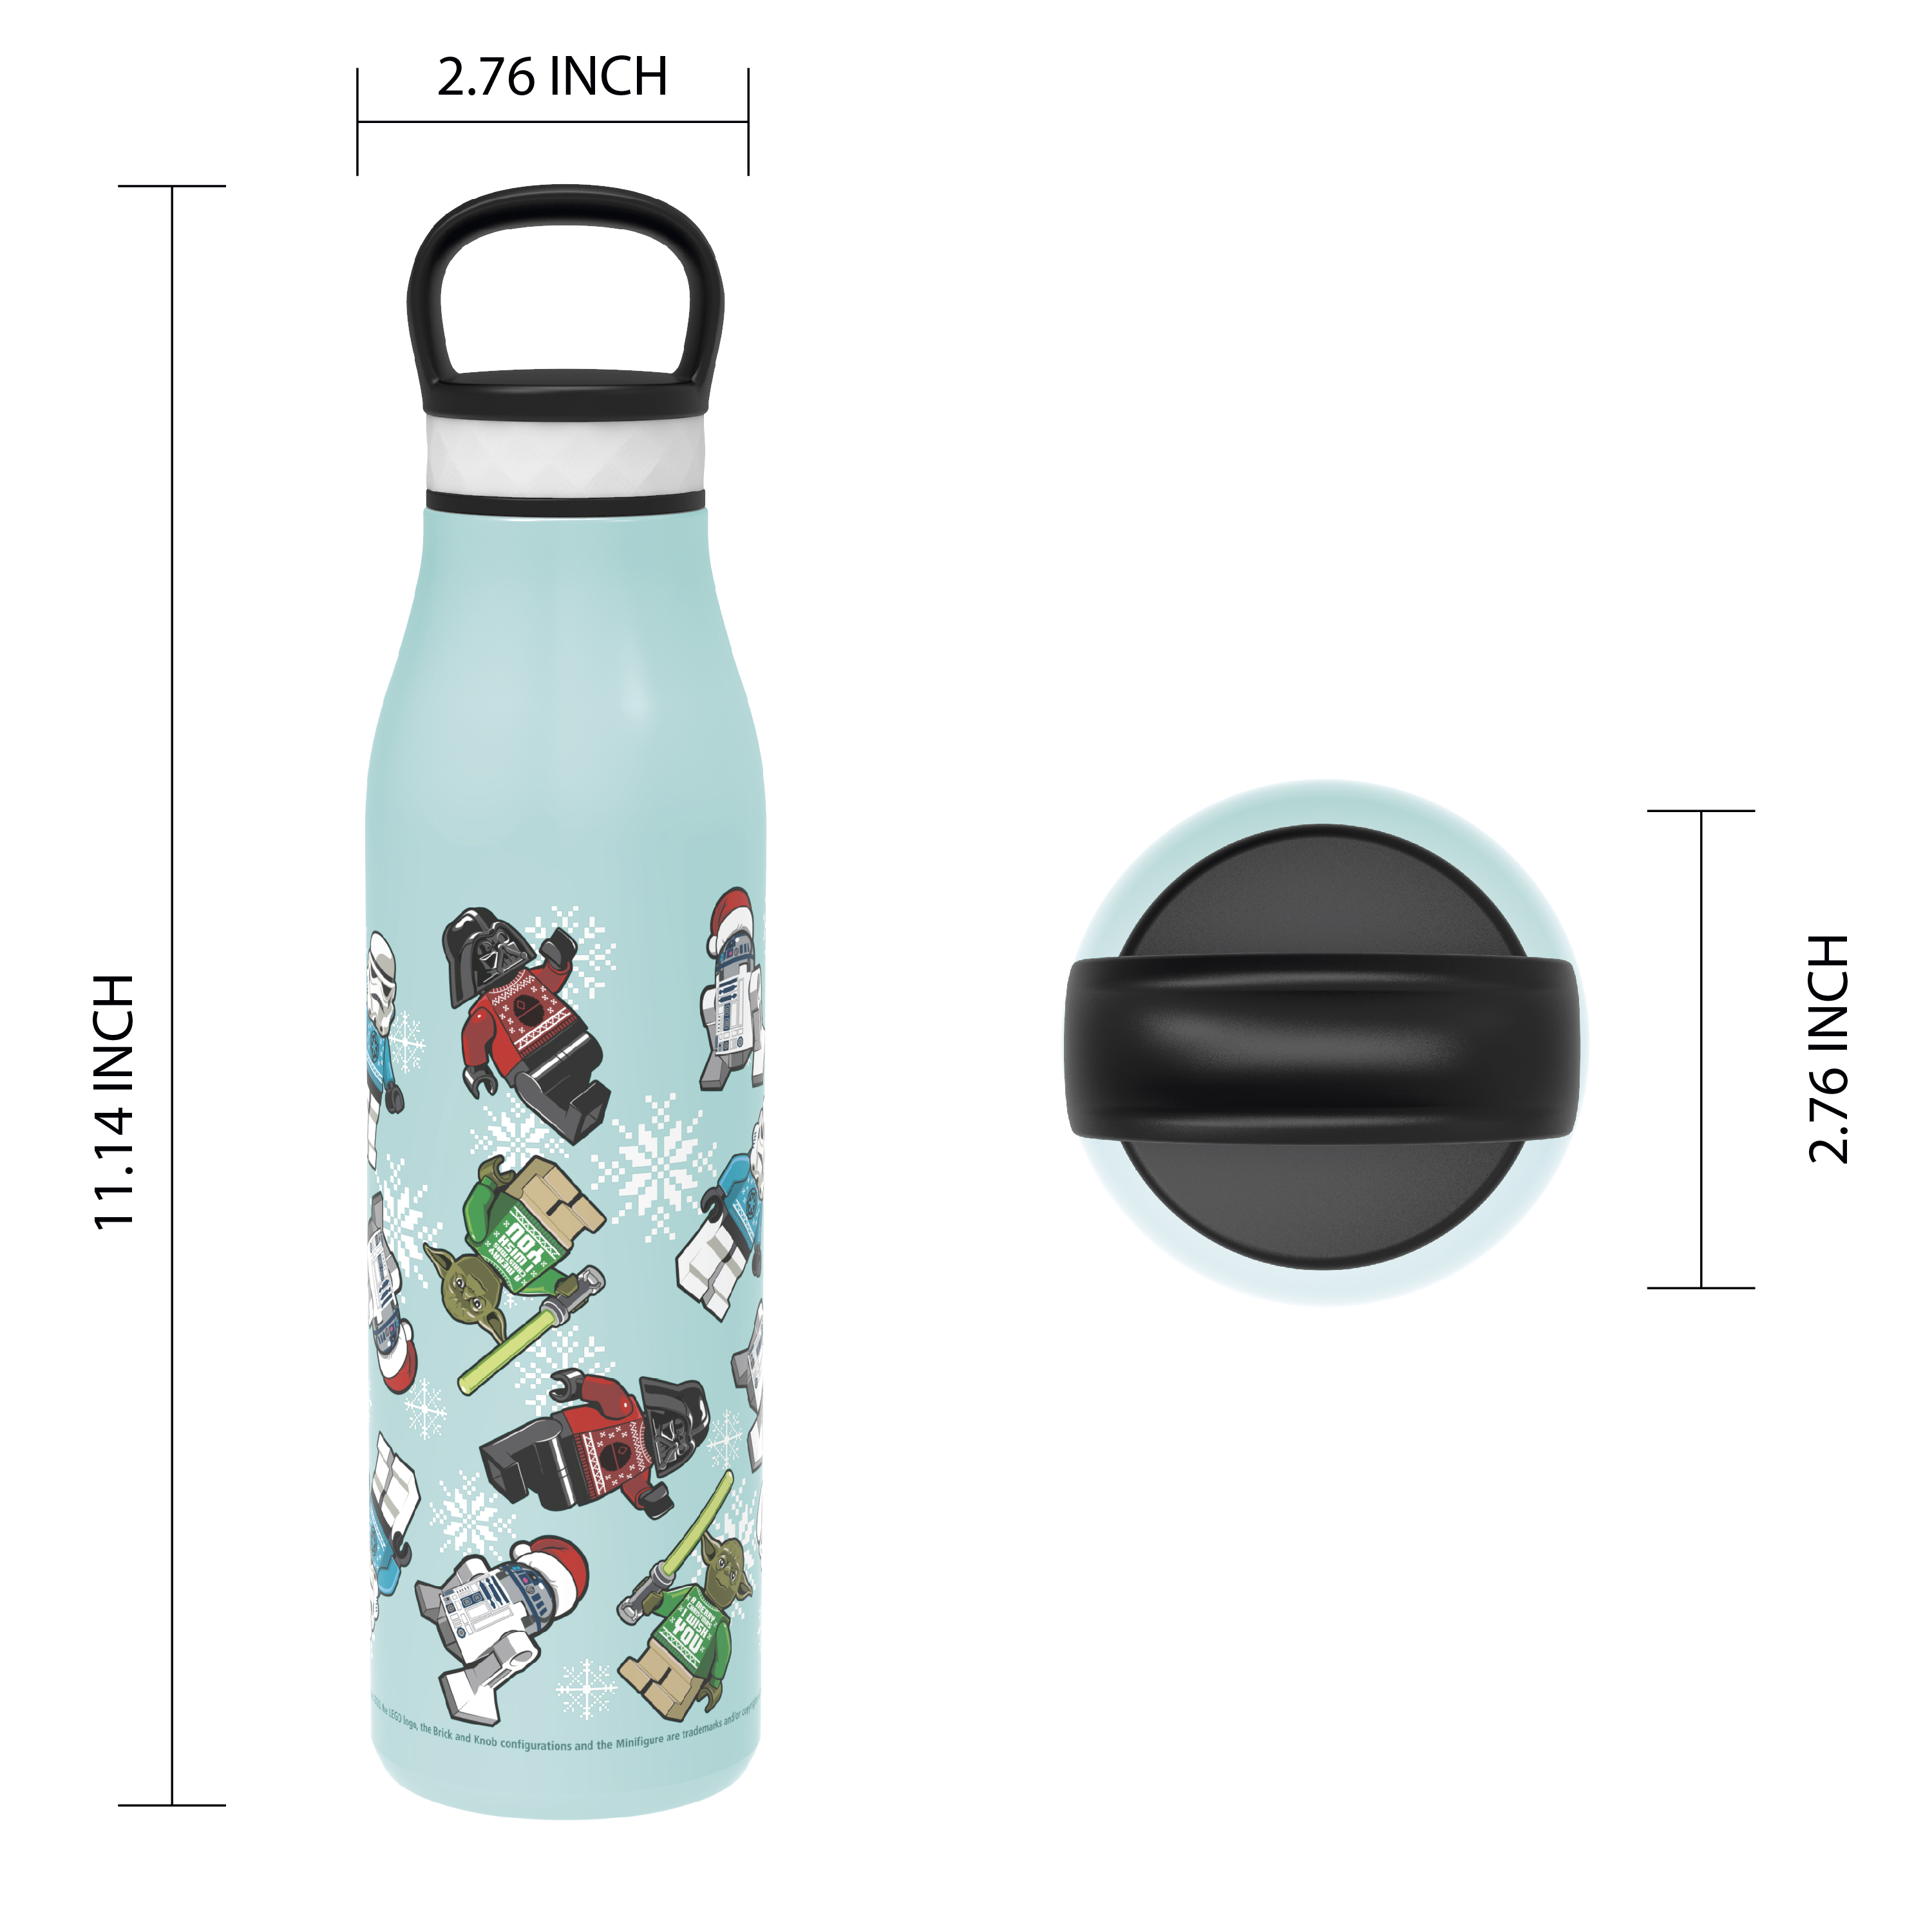 Lego Star Wars 20 ounce Stainless Steel Vacuum Insulated Water Bottle, R2-D2, Yoda and Darth Vader slideshow image 4